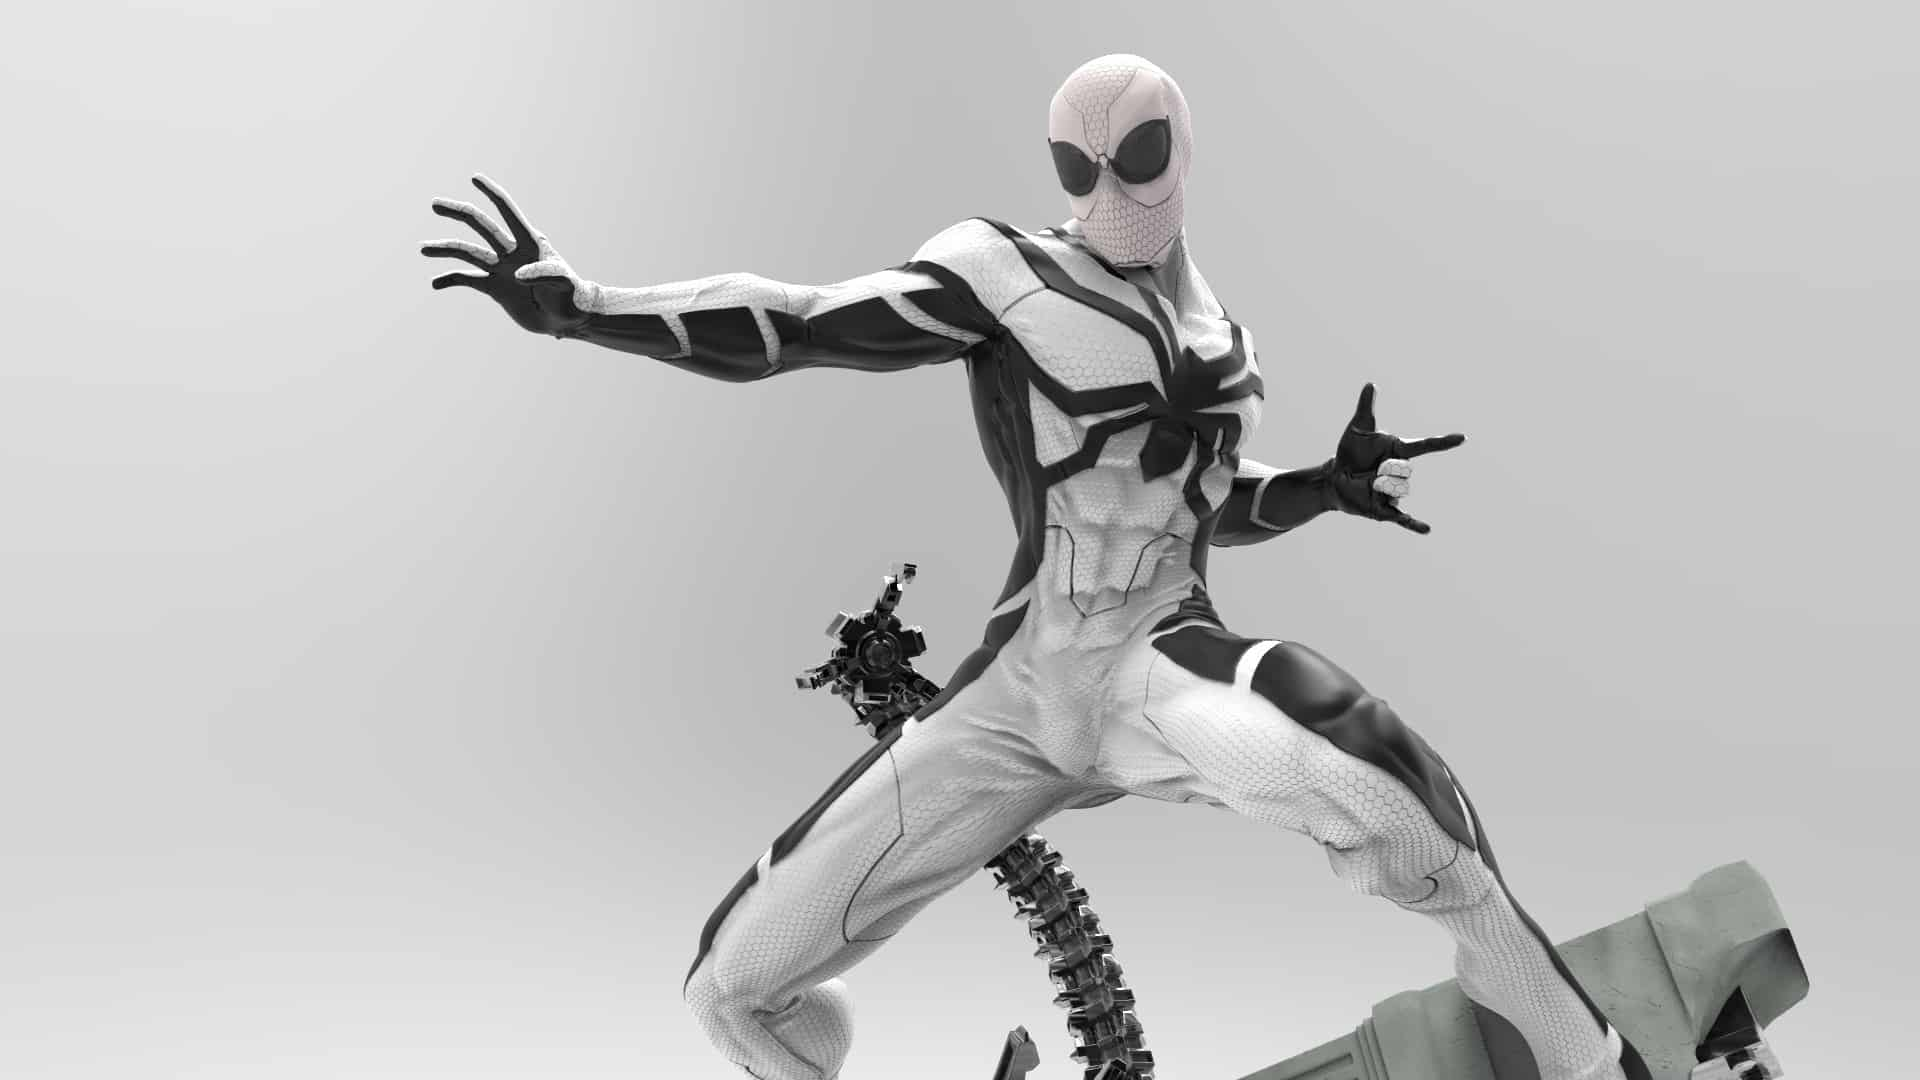 2196b1a90cc25 ... one-off Spider-Man costume. I bet you are starting to see a pattern!  The Future Foundation Spider-Man (FF Spider-Man) first appeared in  Fantastic Four ...